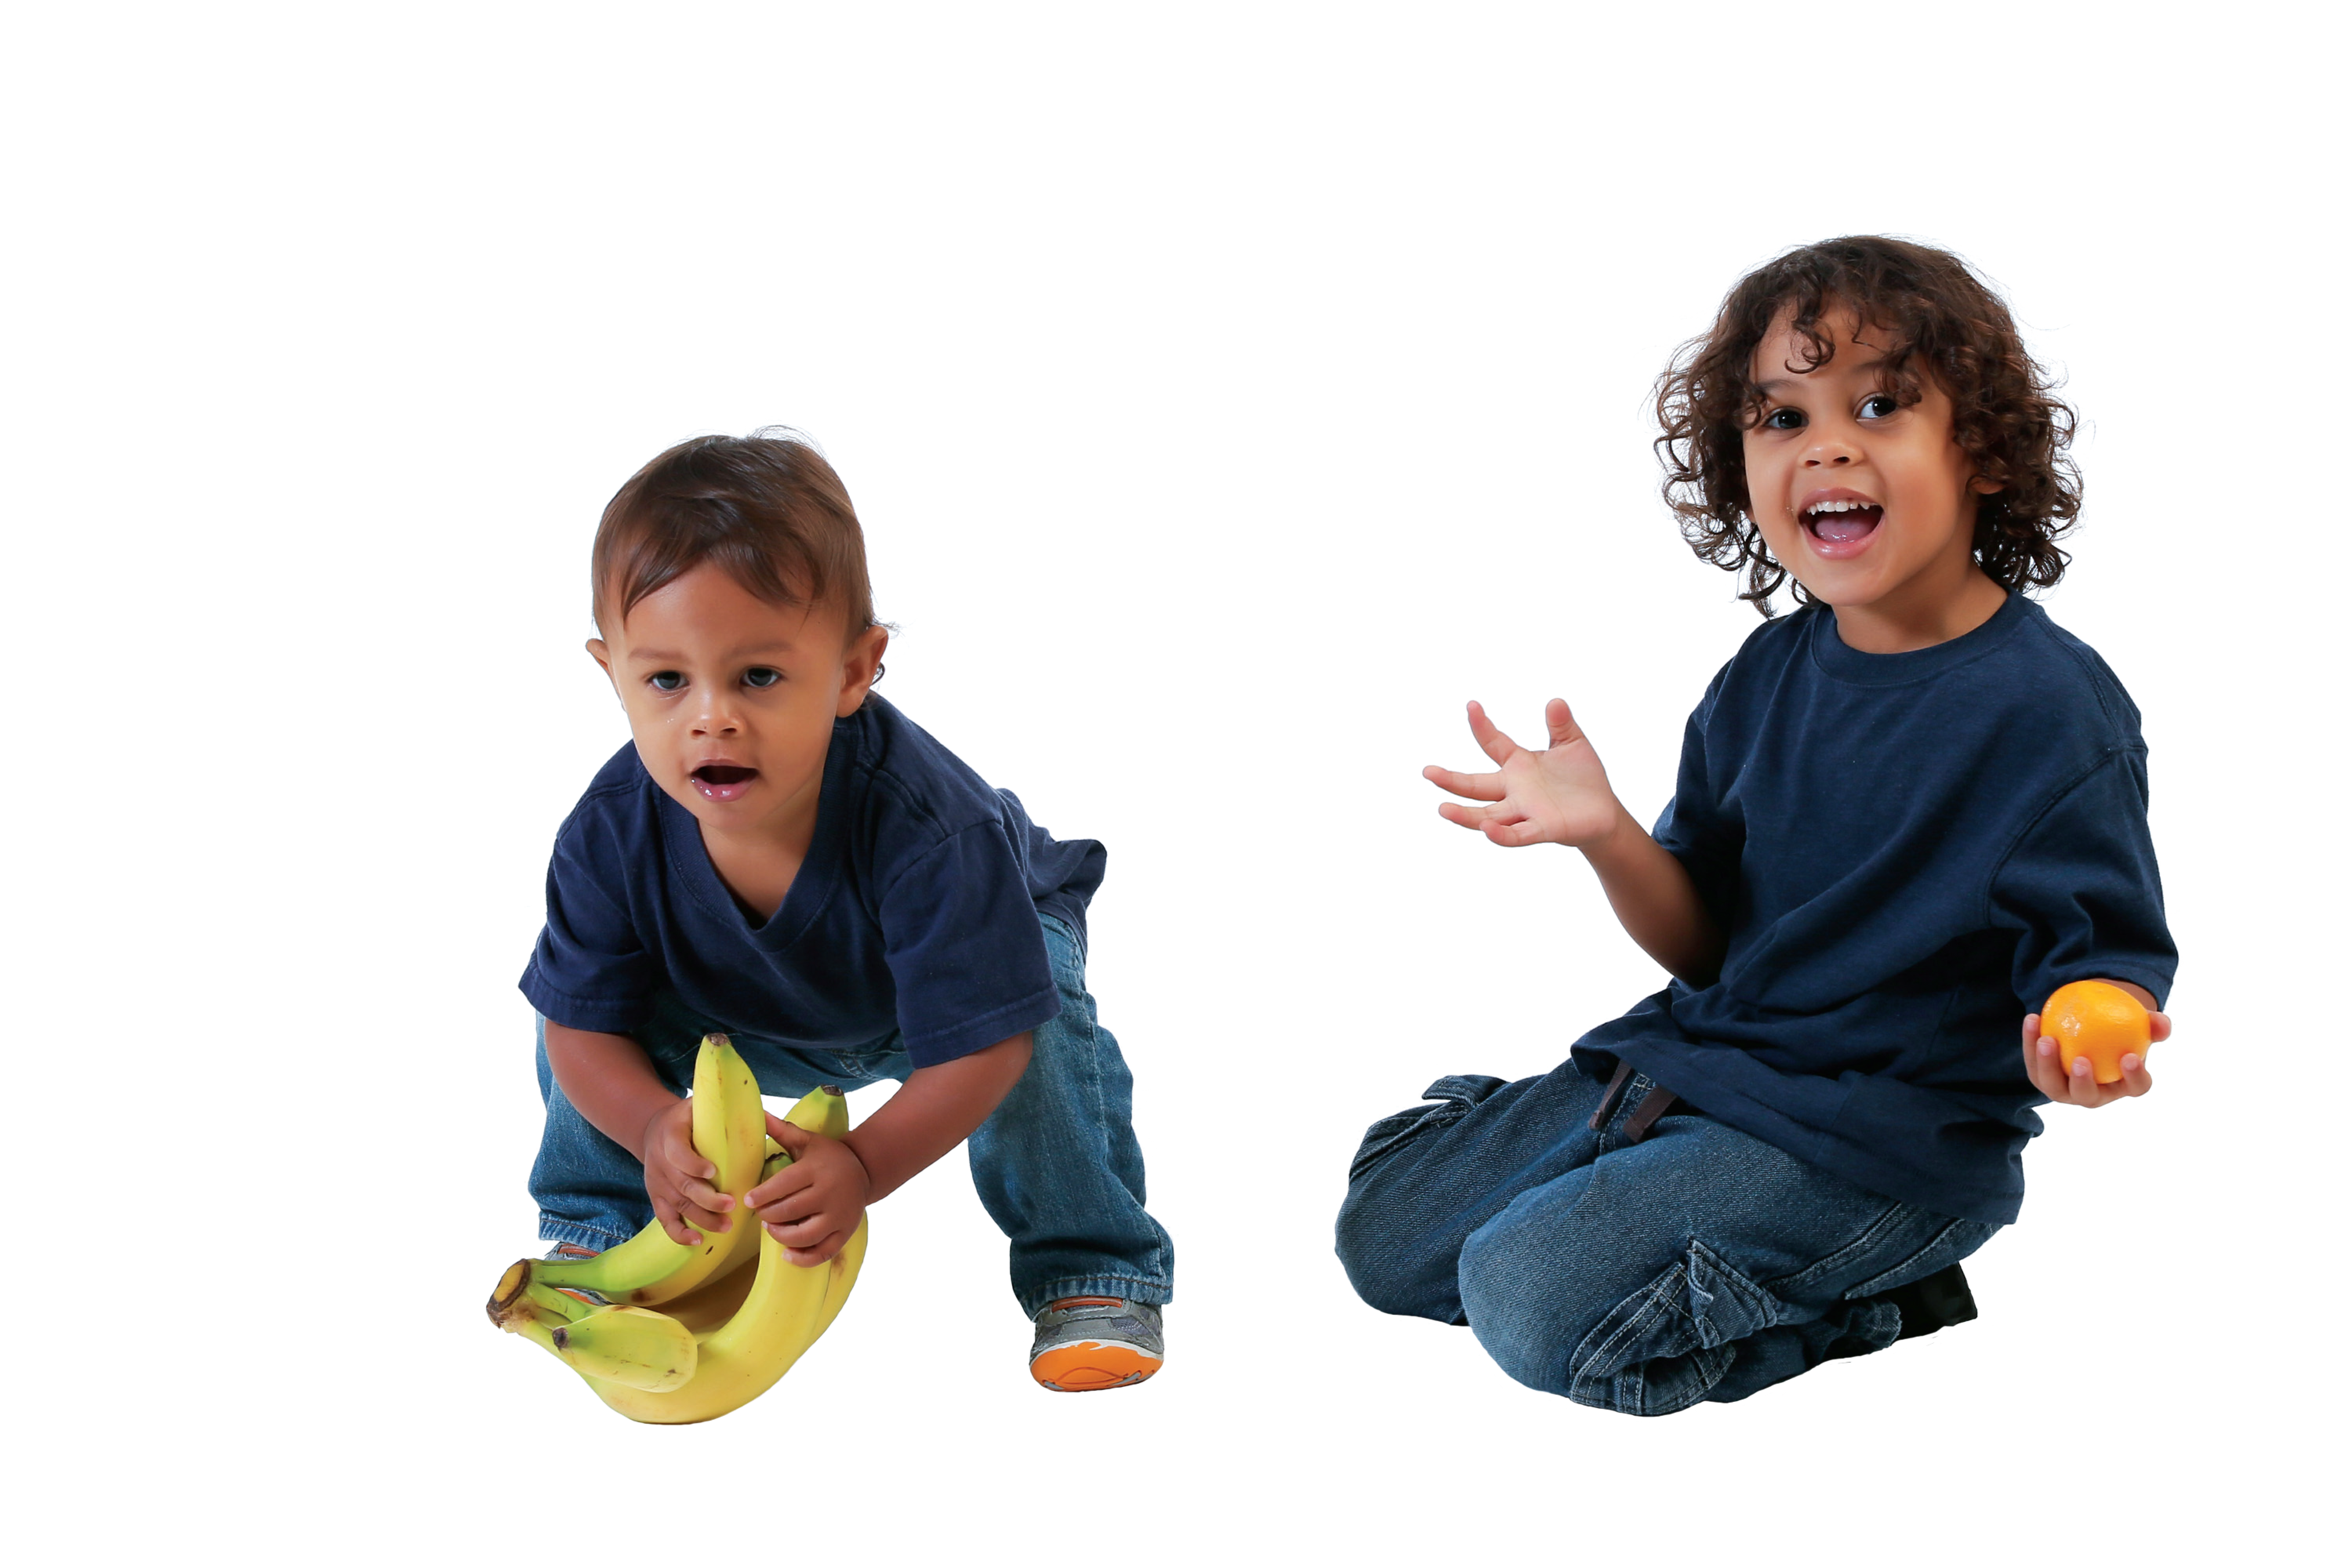 Child Care, Kids Playing Png image #42477